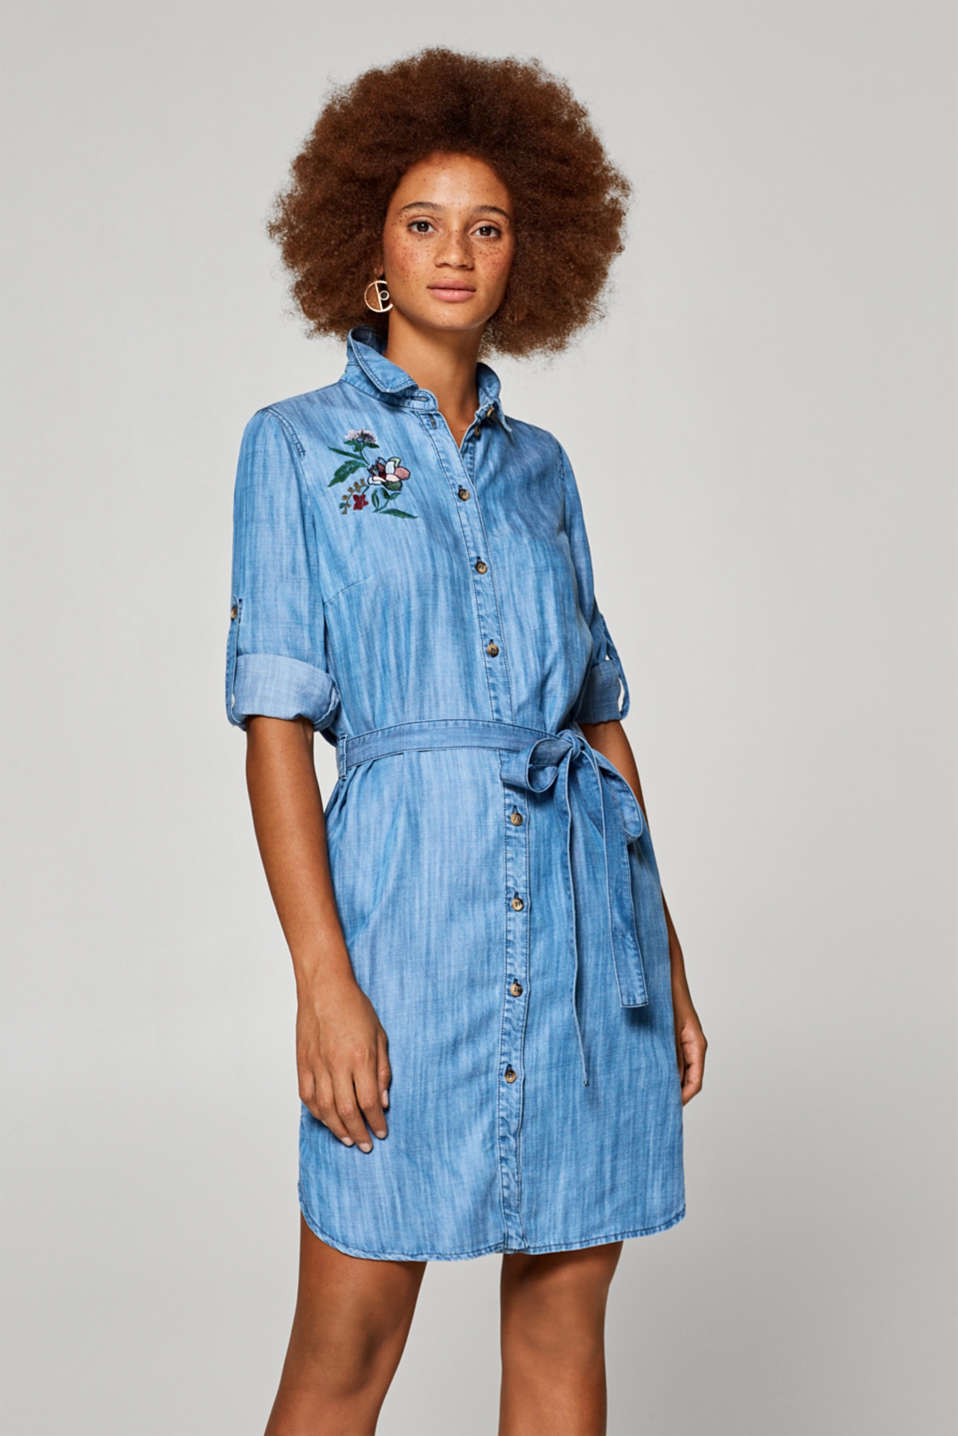 edc - Denim-effect lyocell dress with floral embroidery